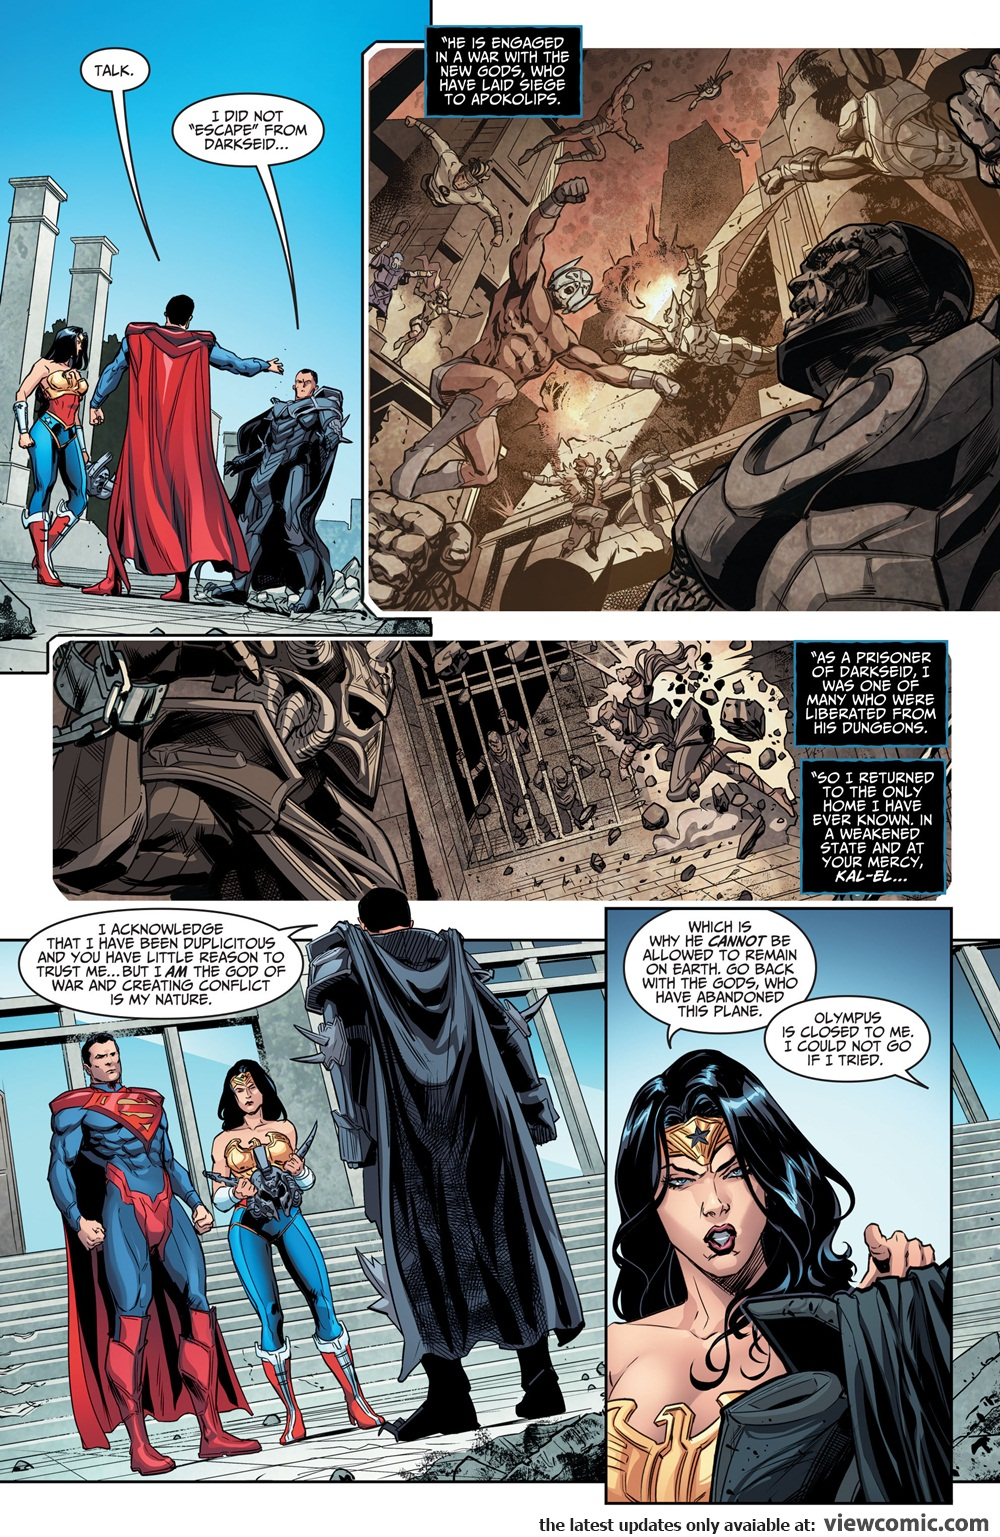 Injustice – Gods Among Us – Year (5) Annual 001 (2017) | Vietcomic.net reading comics online for free